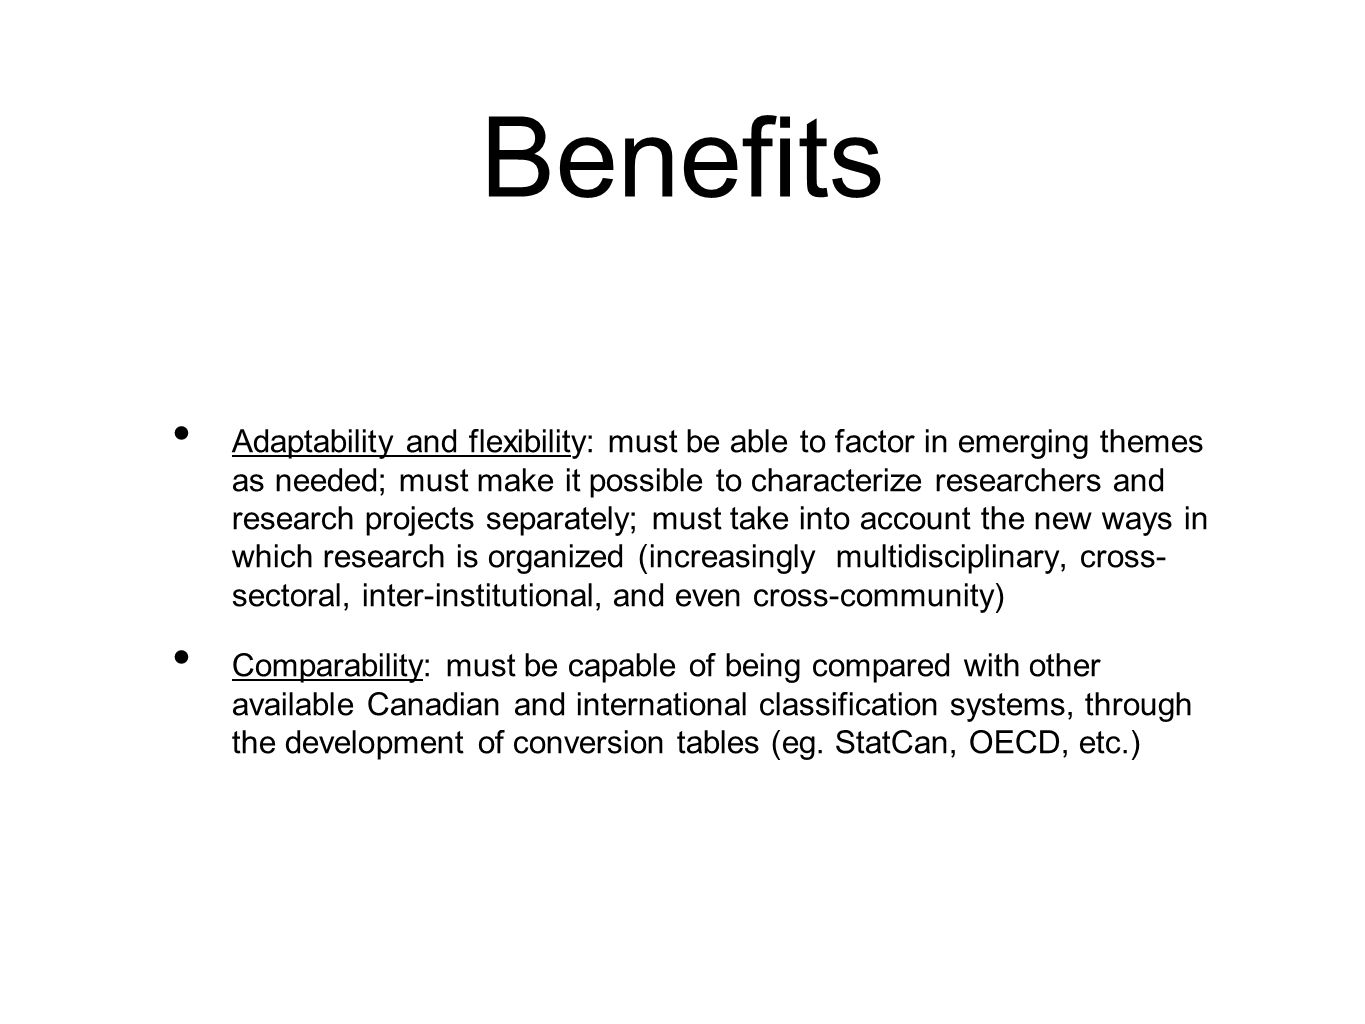 Benefits Adaptability and flexibility: must be able to factor in emerging themes as needed; must make it possible to characterize researchers and rese